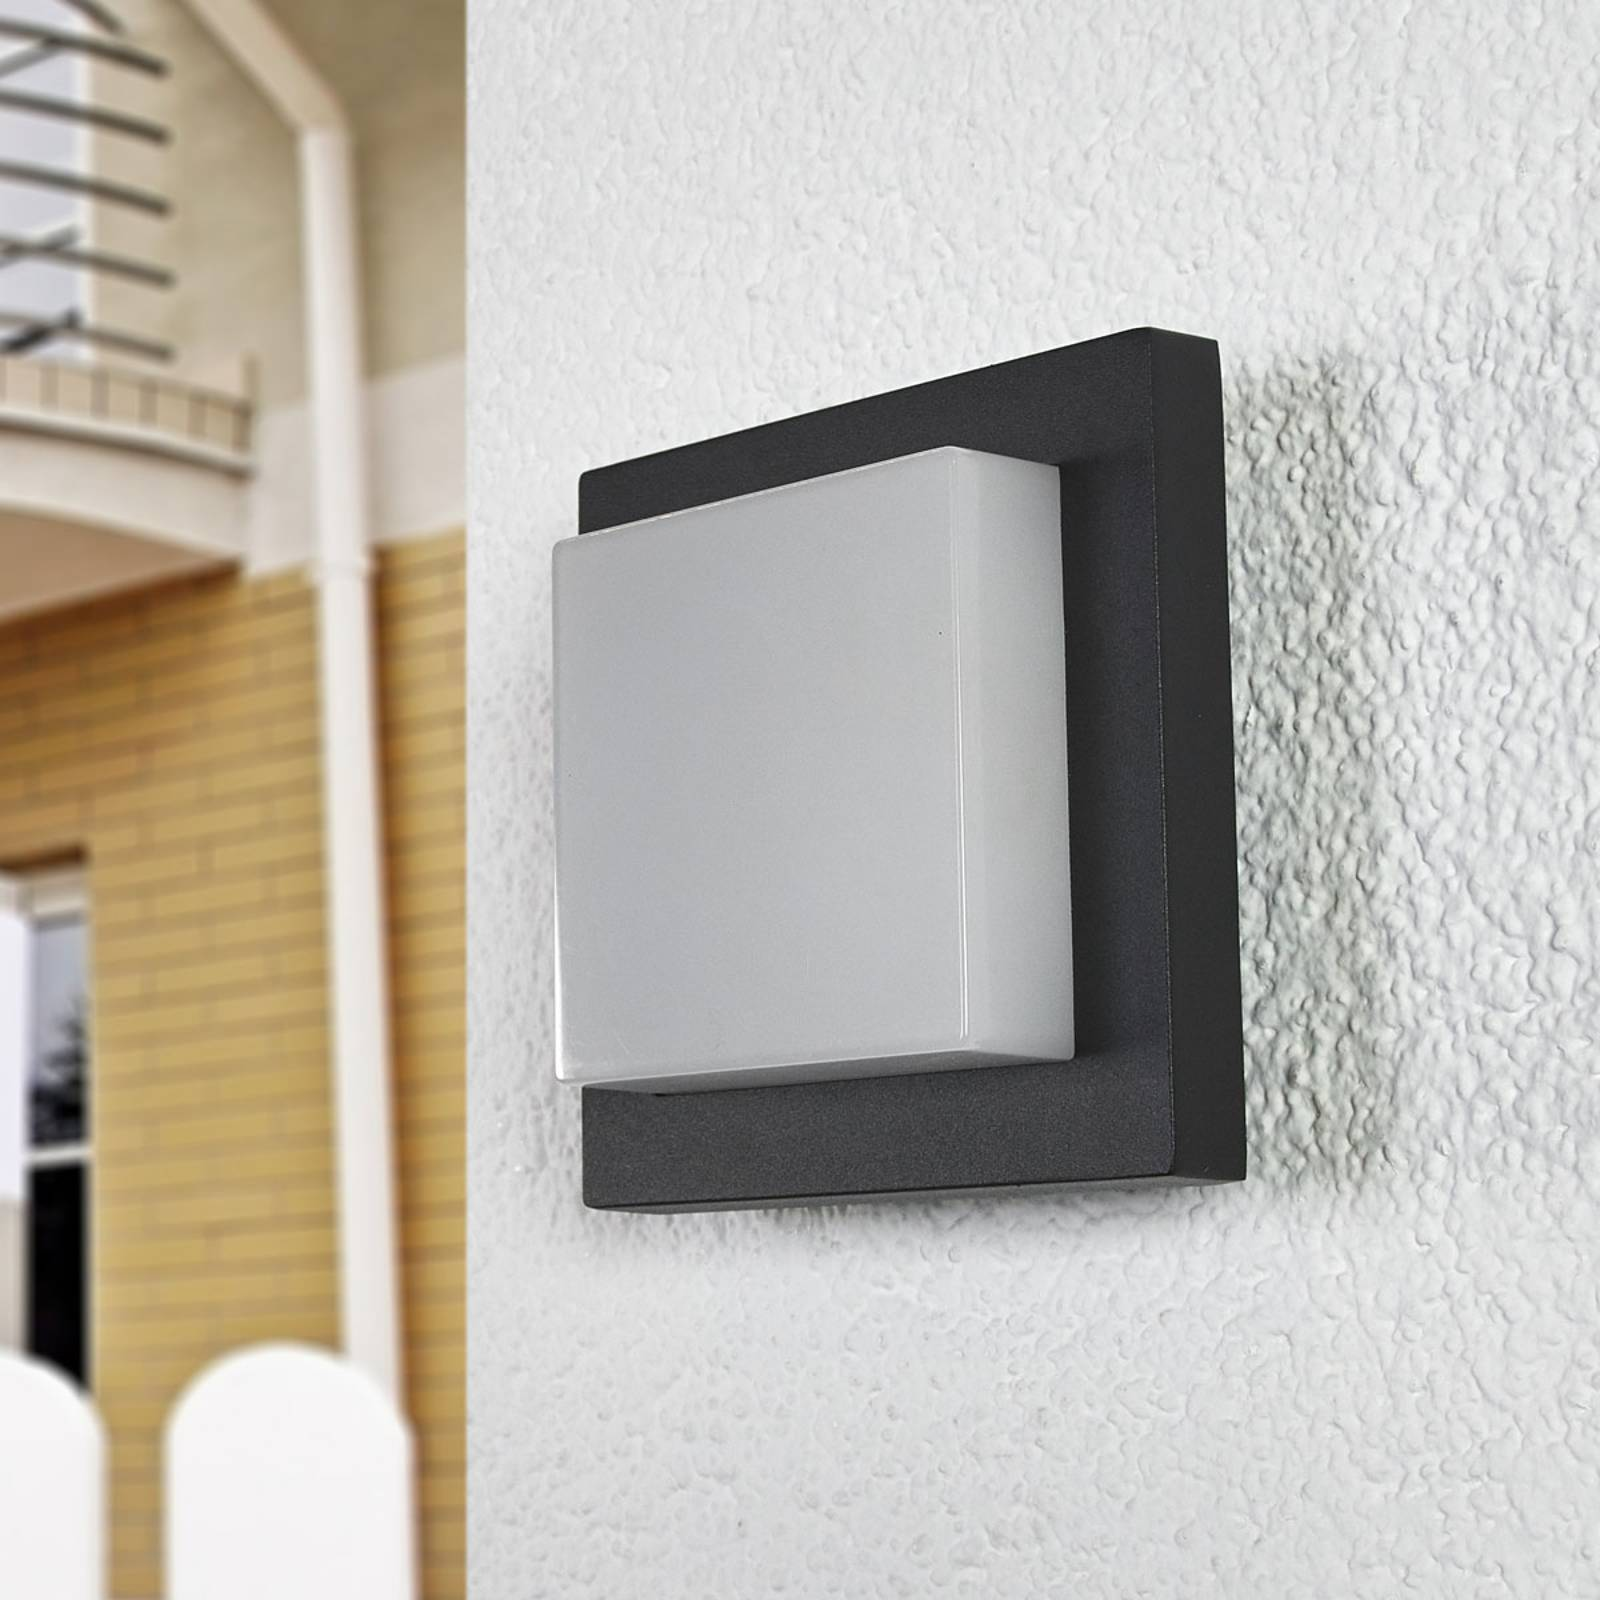 Celeste discreet LED outdoor wall light from Lampenwelt.com